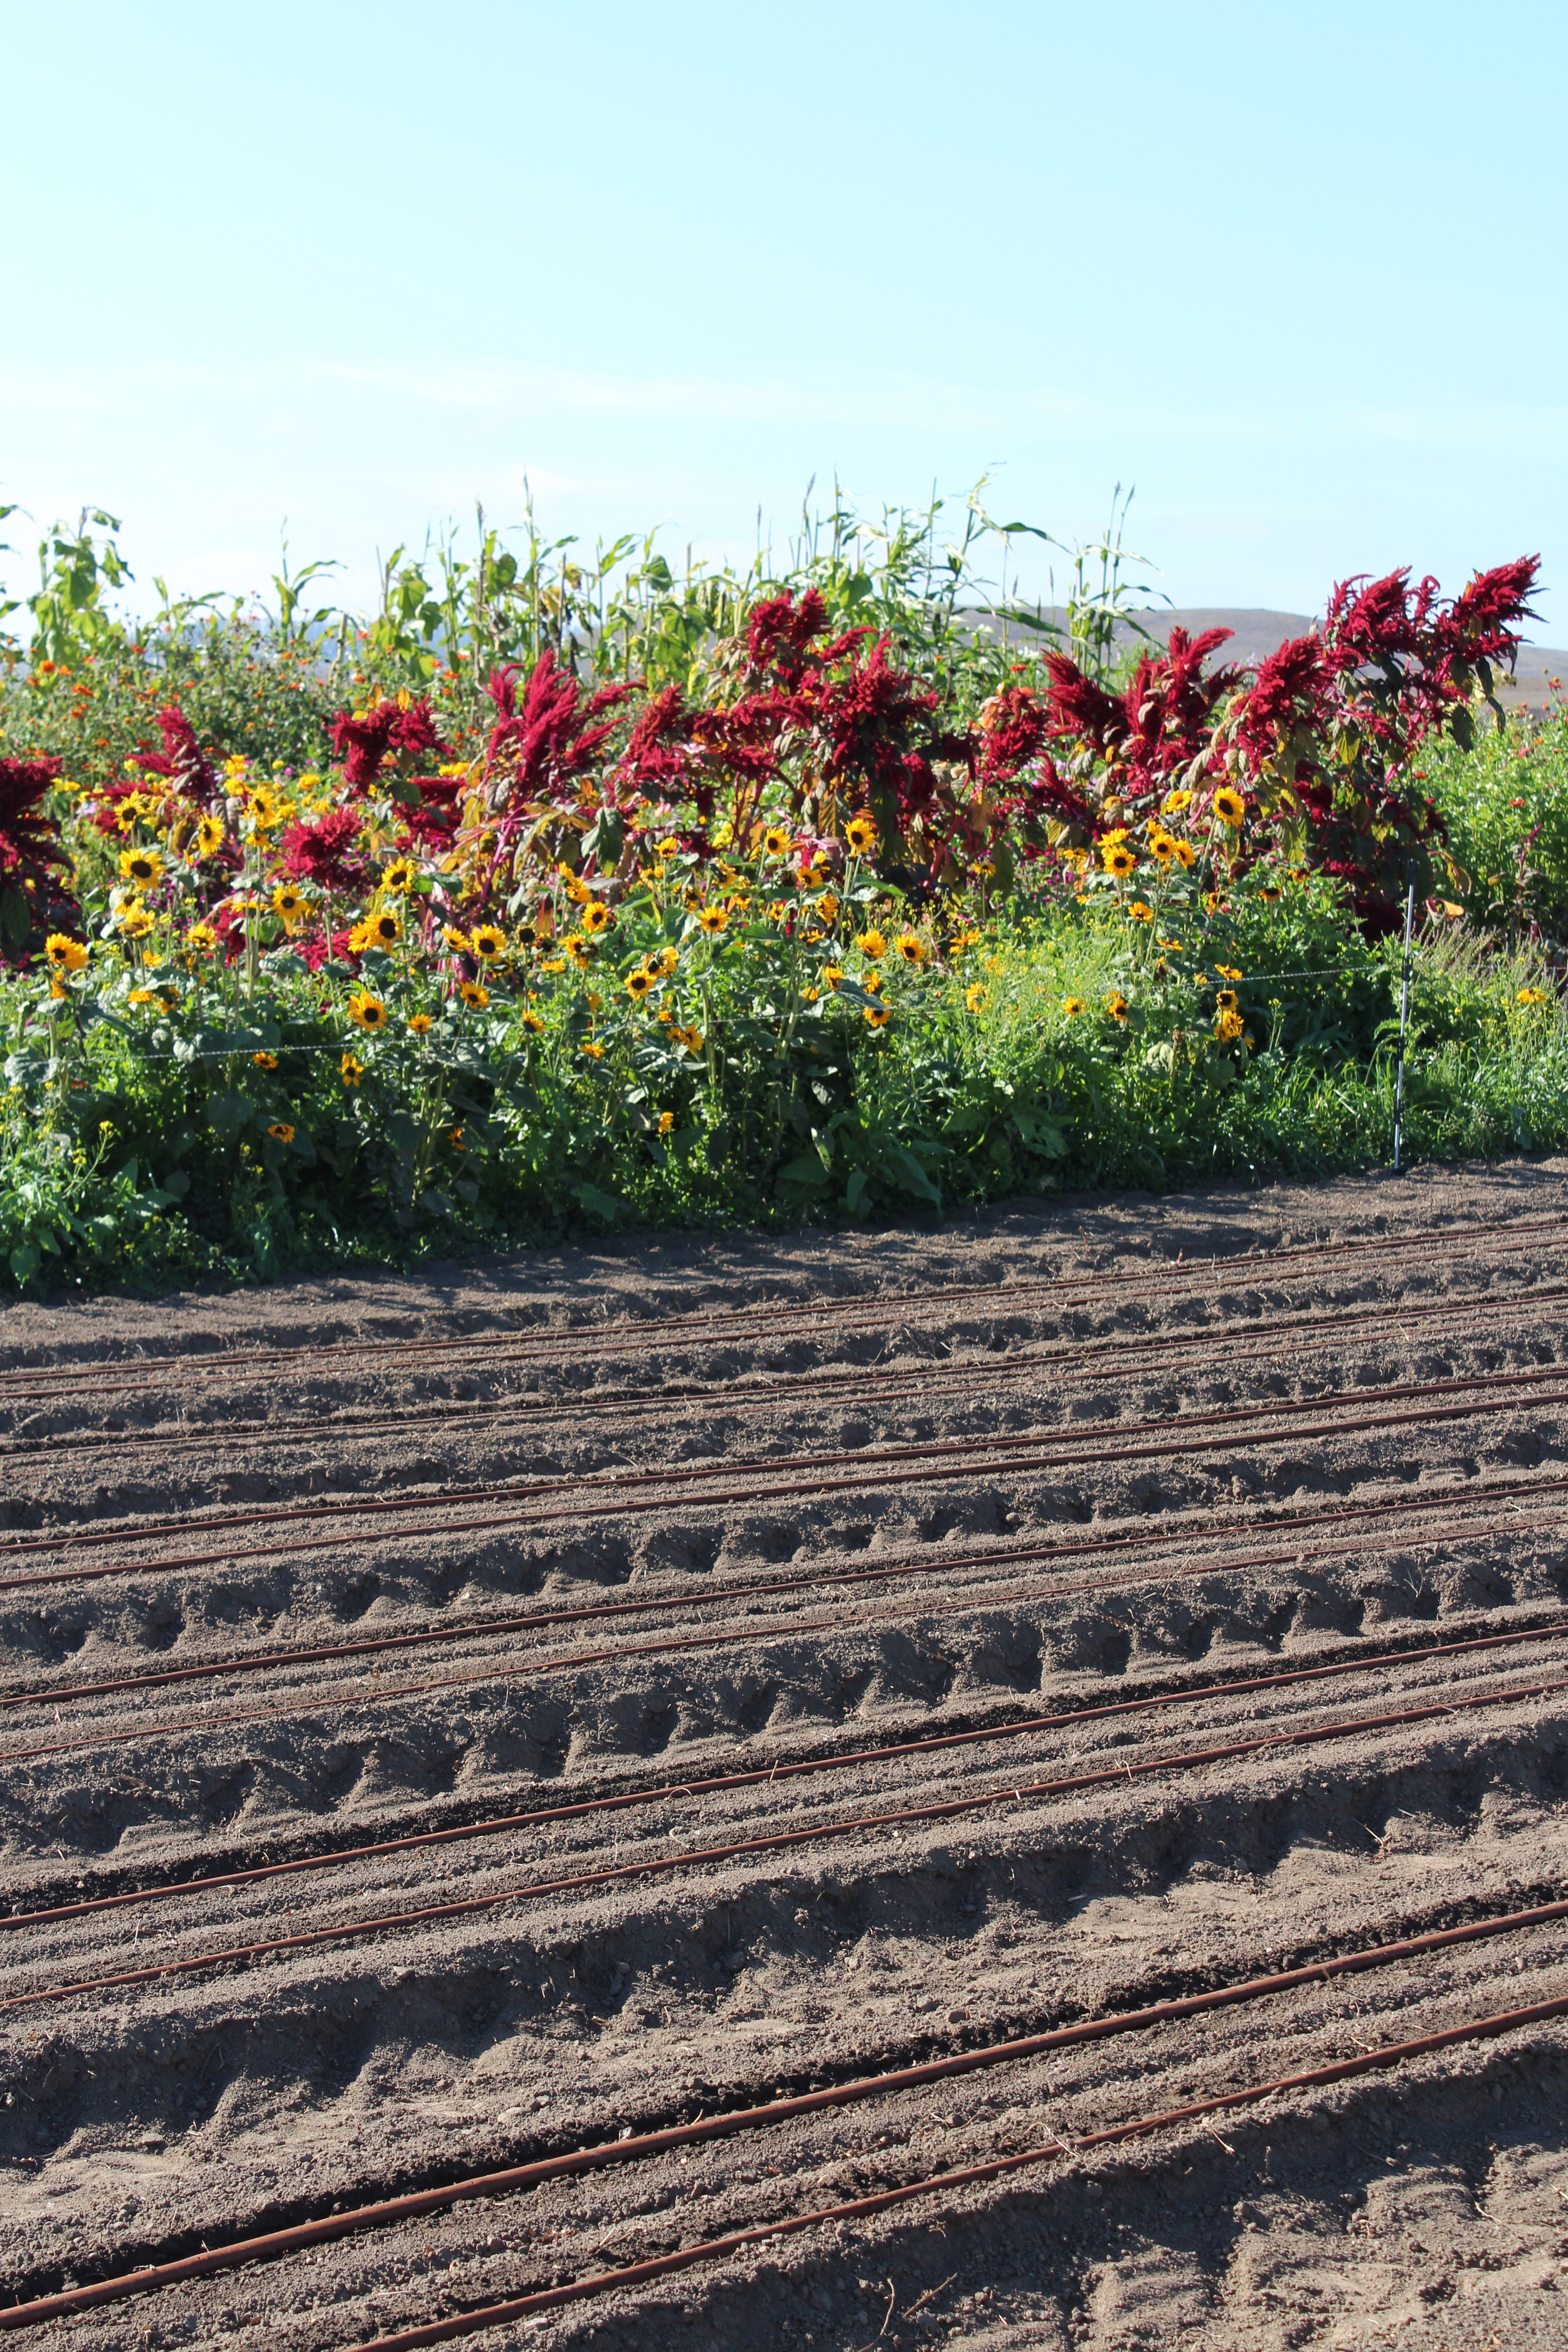 Stark contrast of flowers and freshly seeded beds